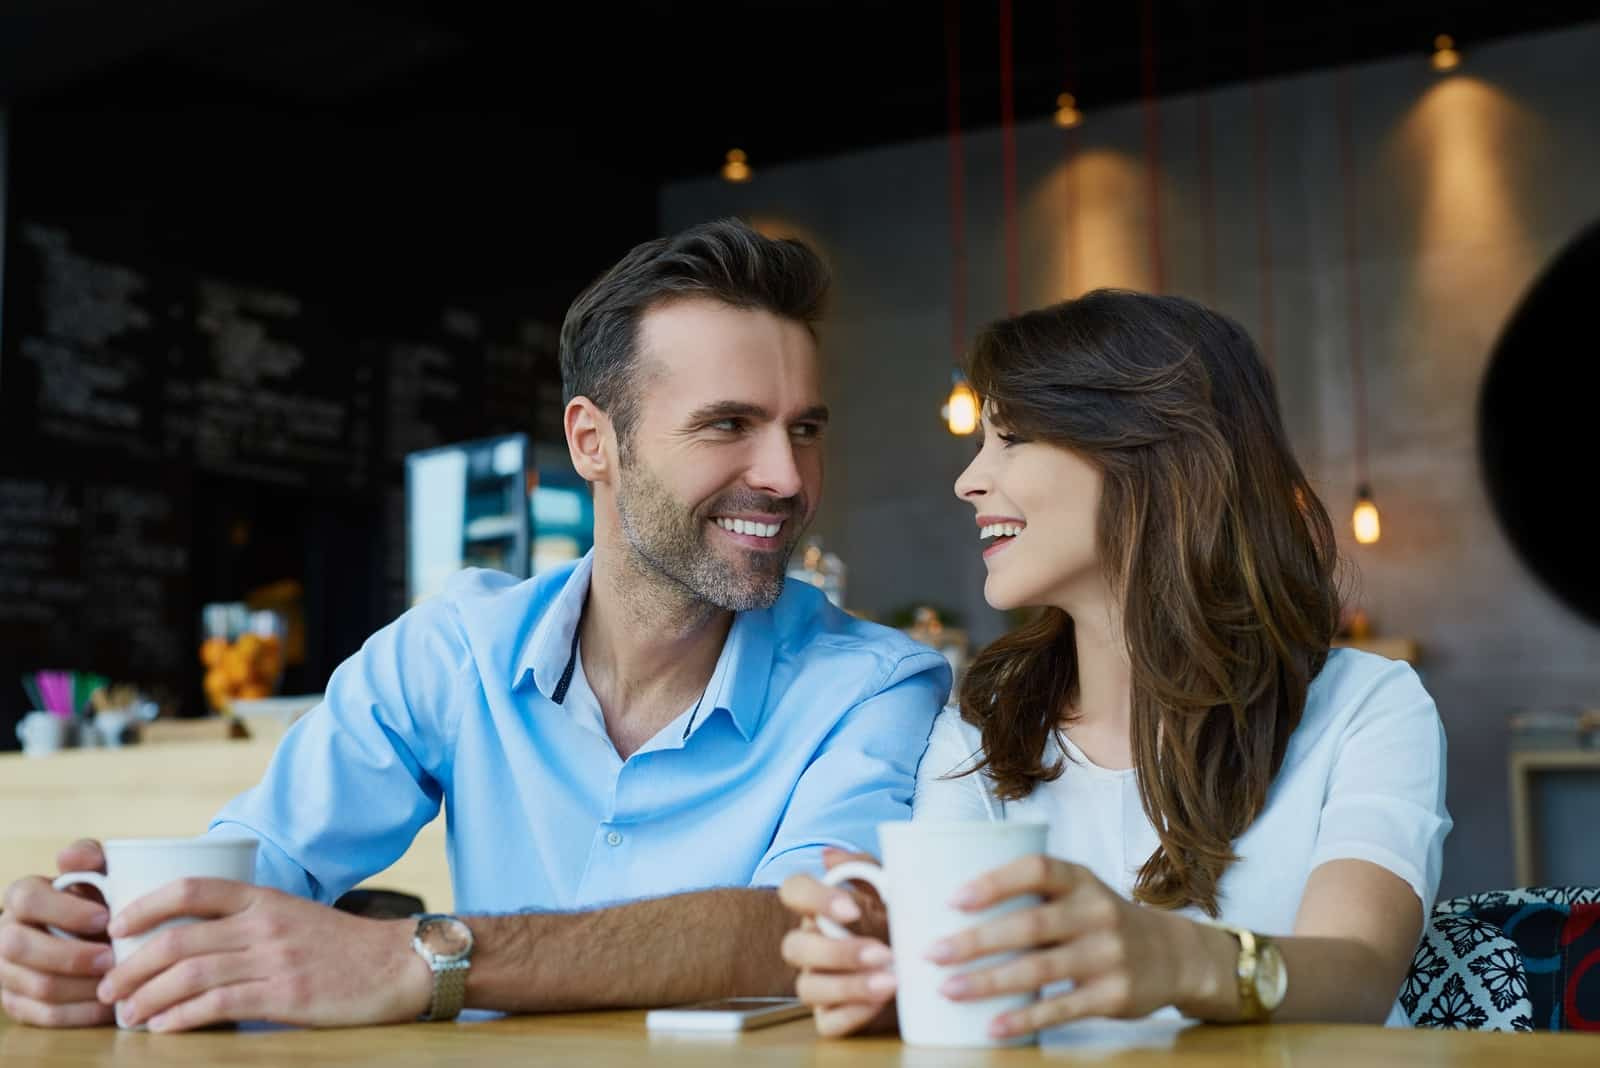 man and woman talking while having coffee in cafe